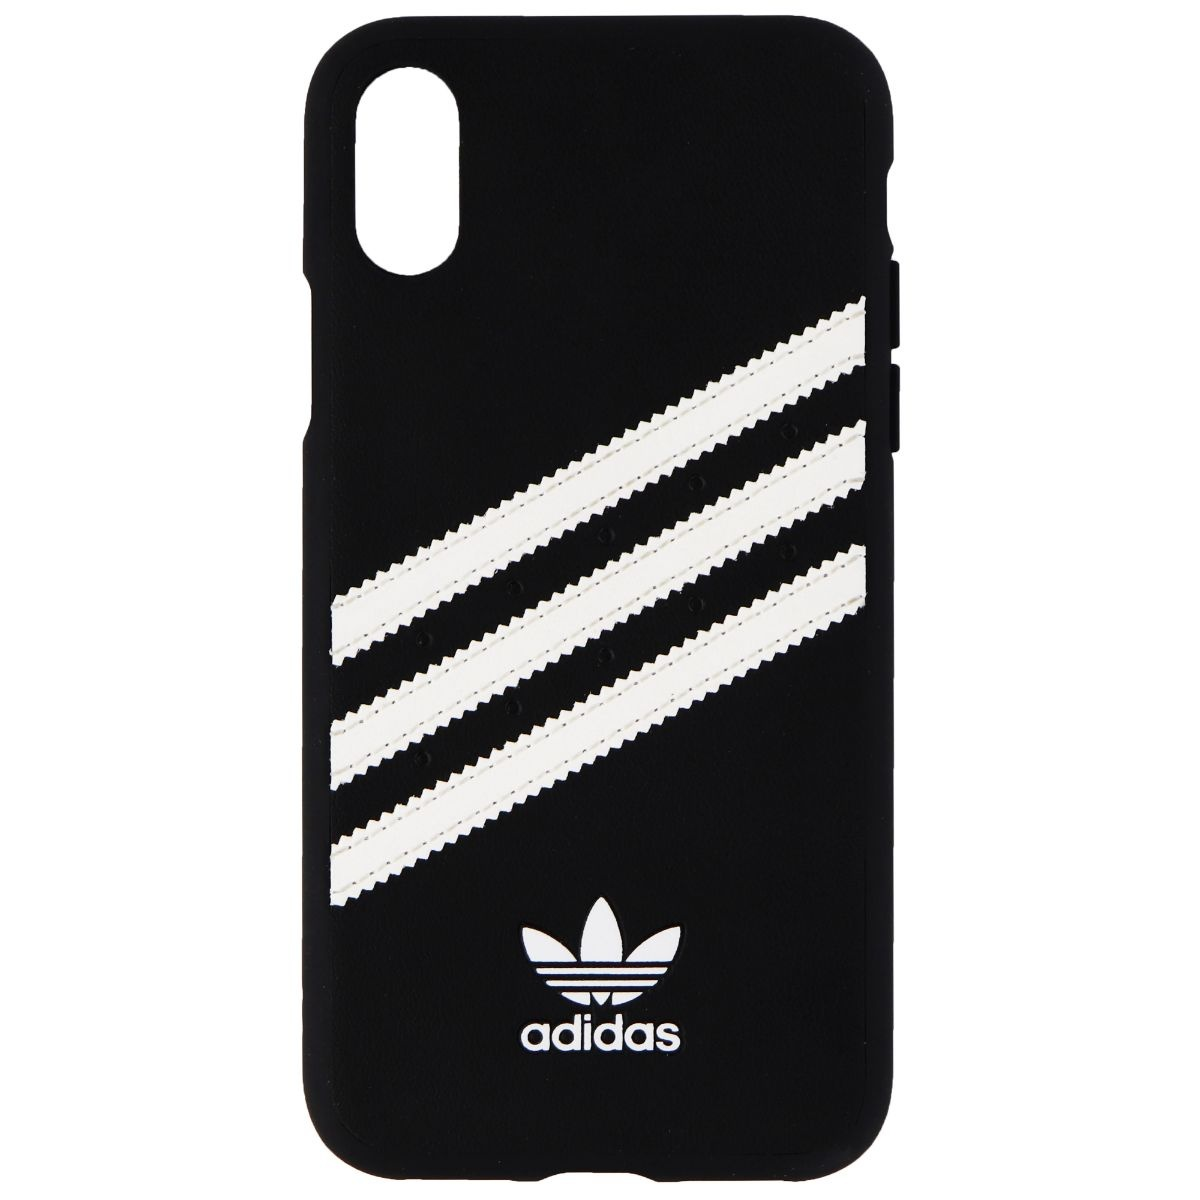 Adidas ADDS33259 Samba Case for iPhone XR - Black/White